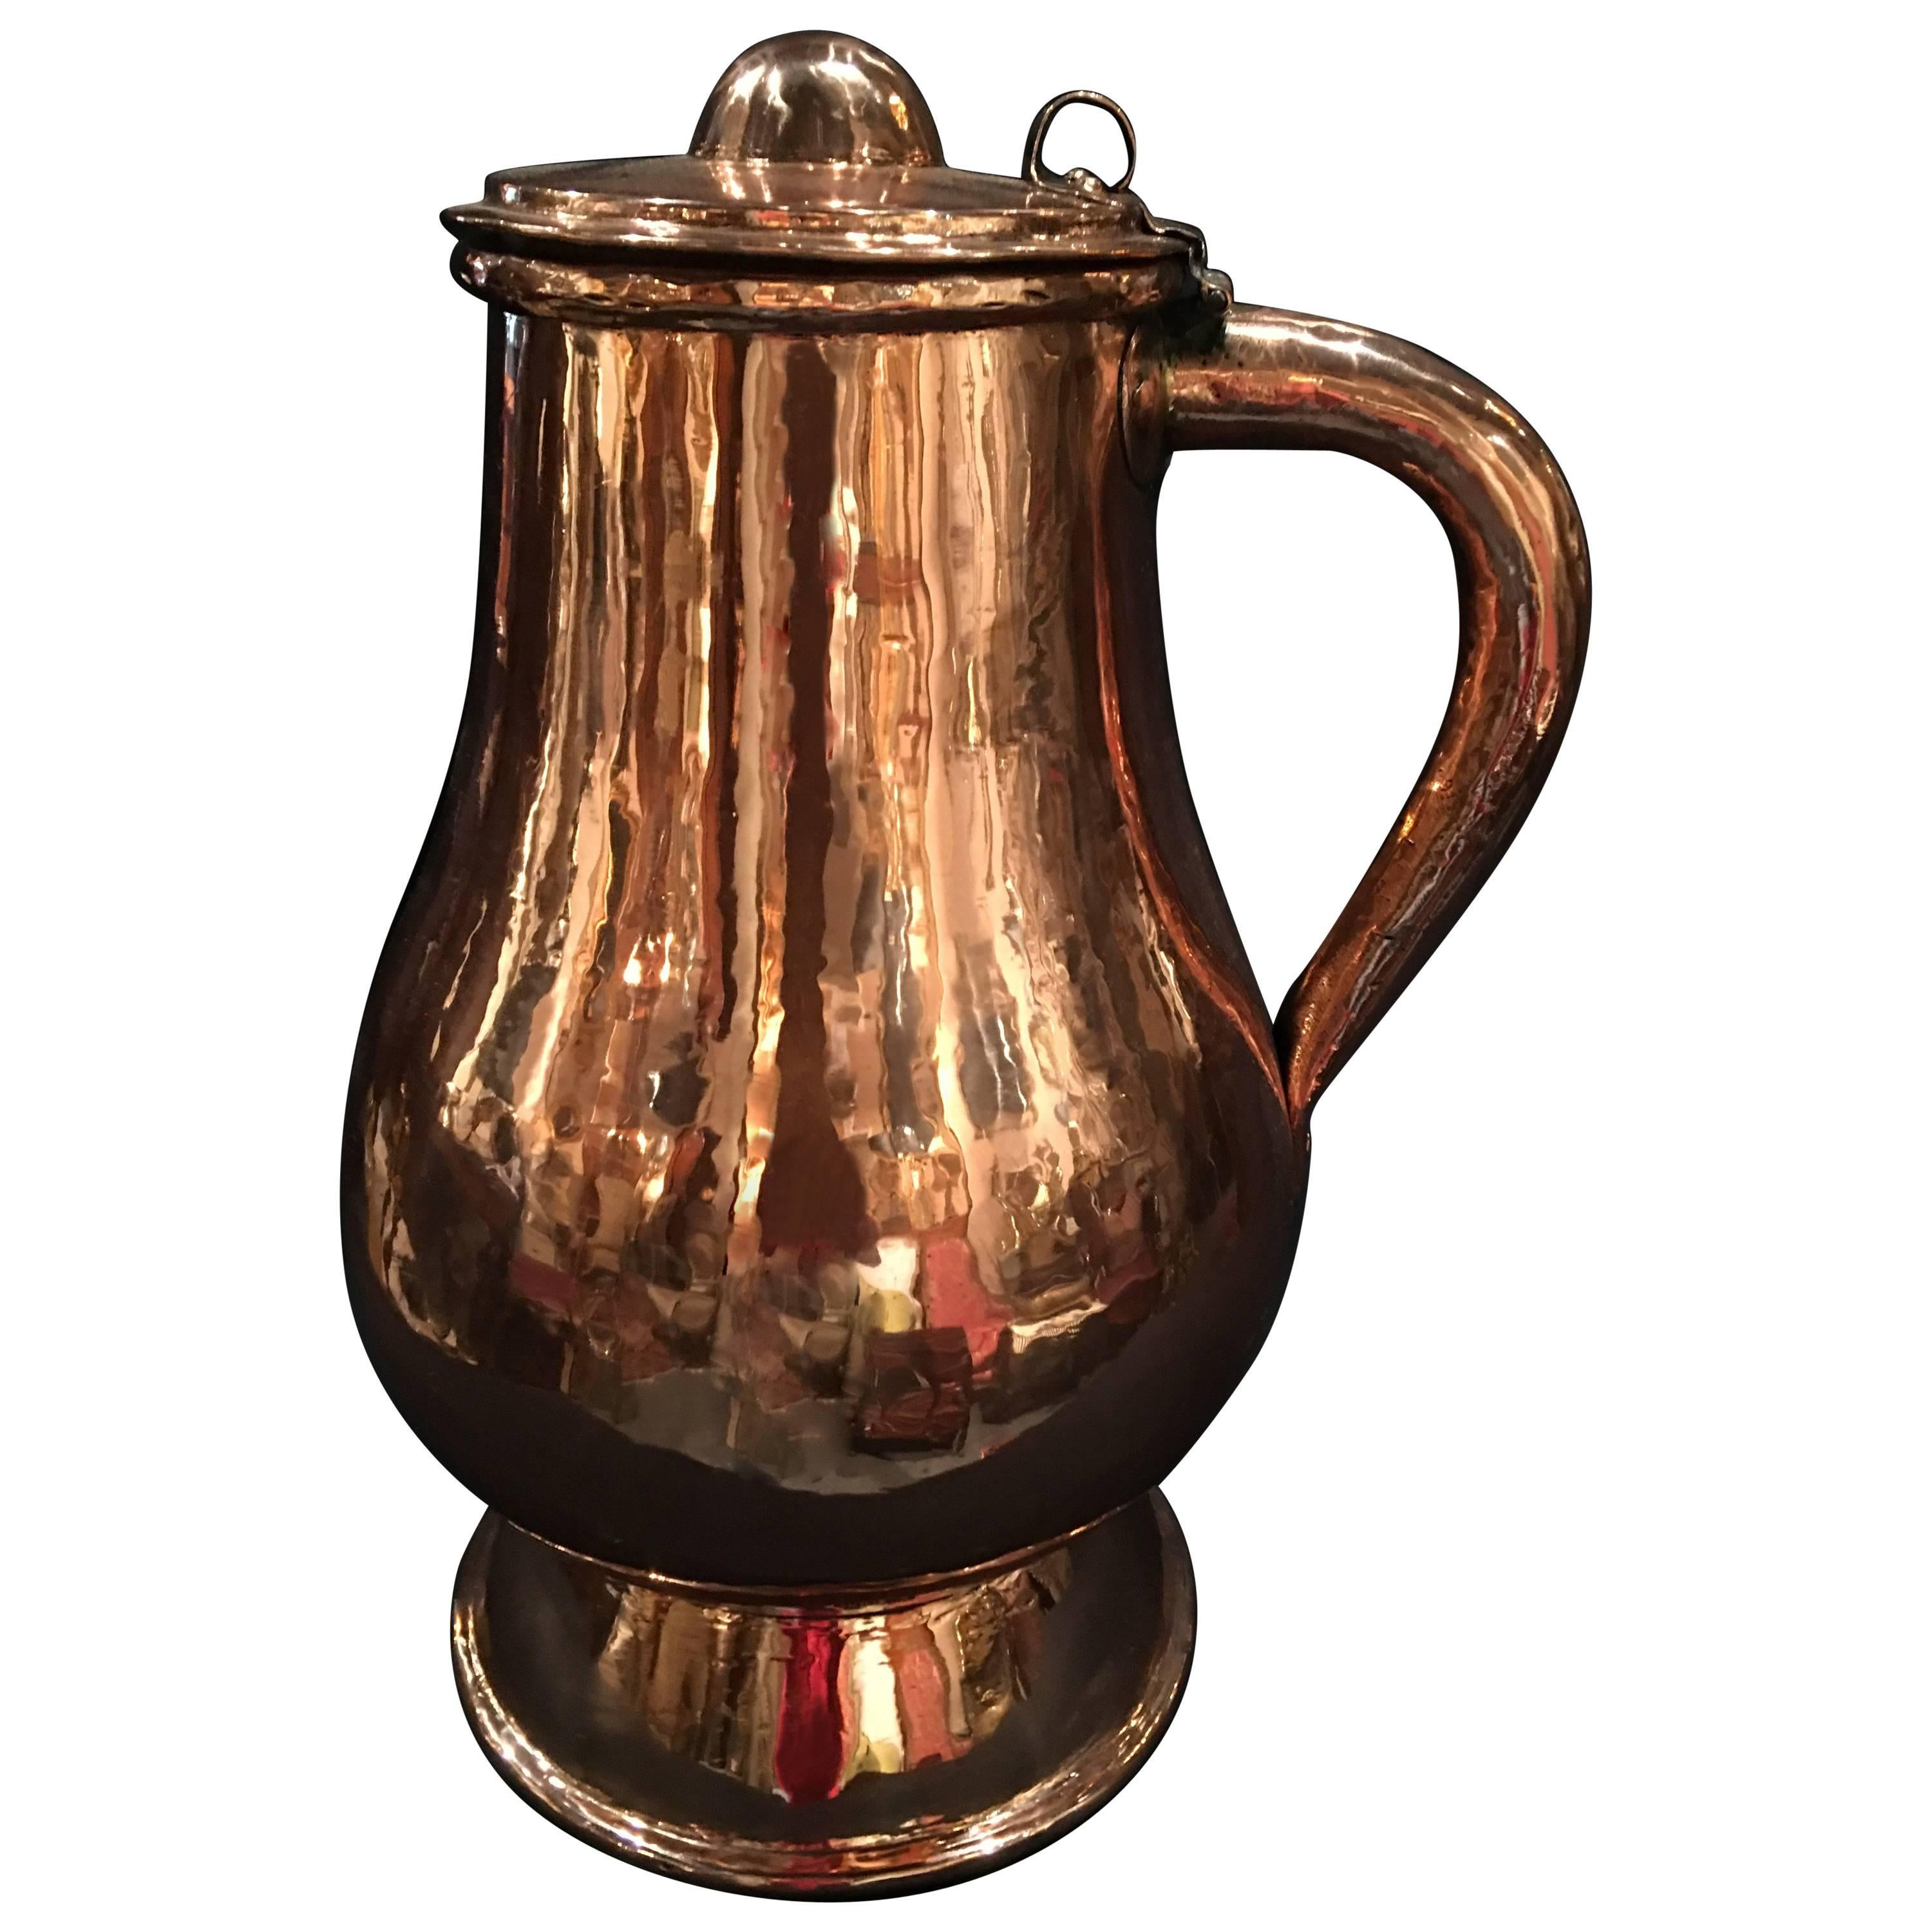 French Polished Copper Jug or Pitcher with Lid and Handle, 19th Century